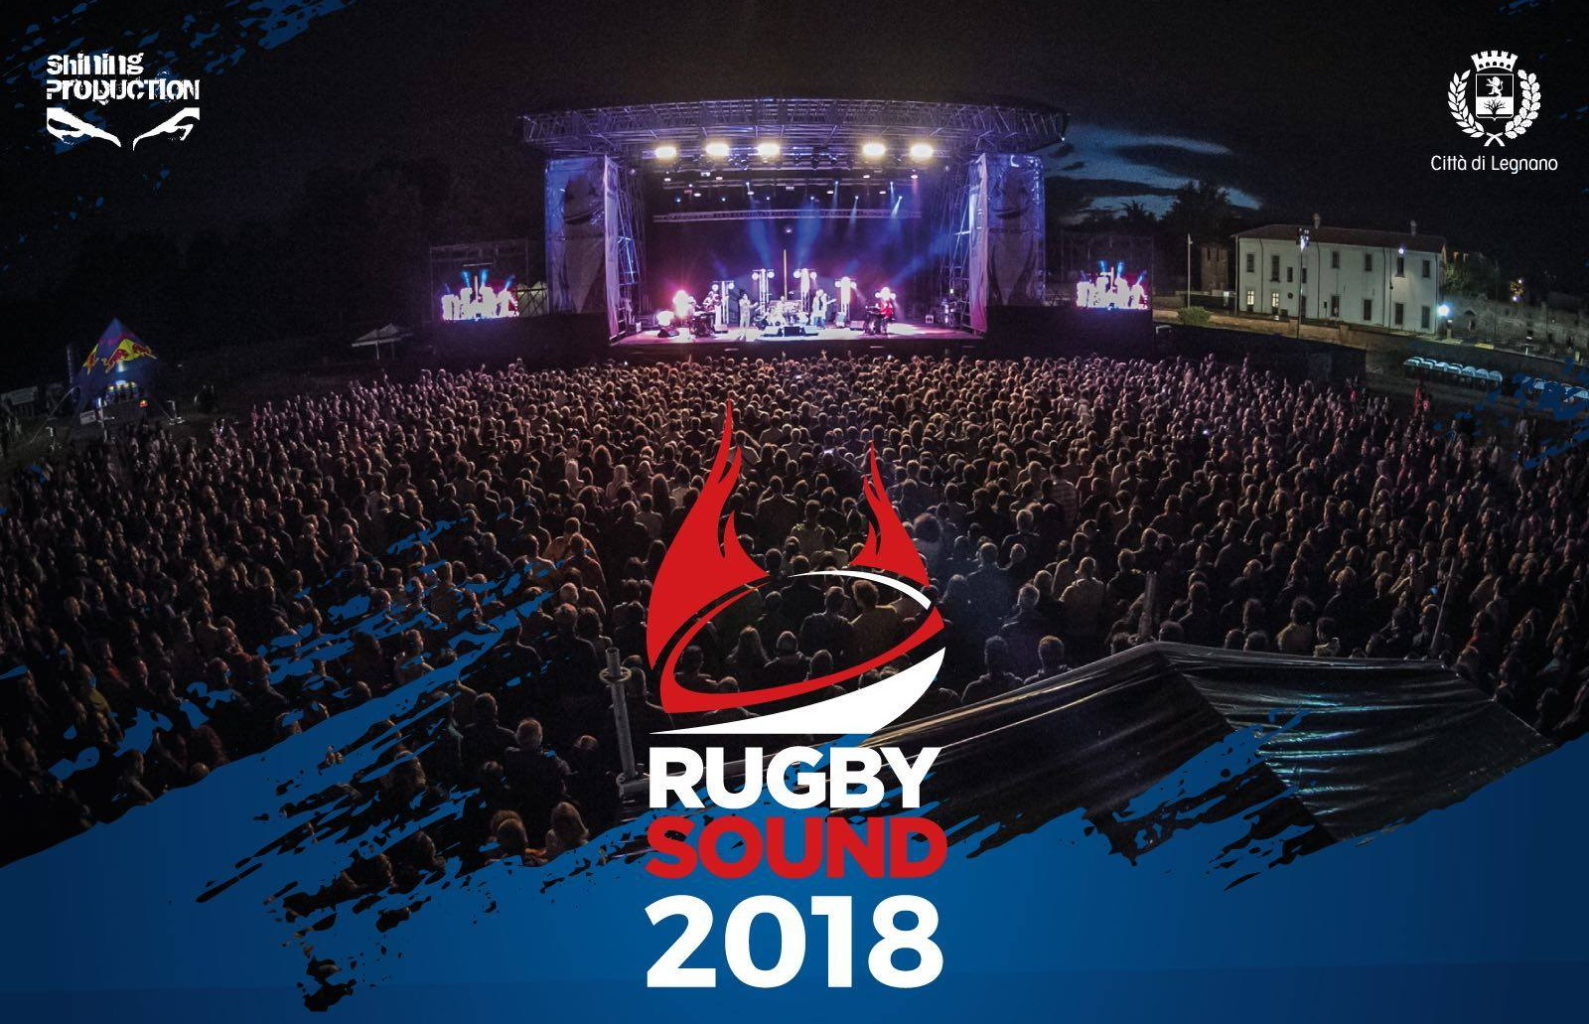 rugby-sound-festival-2018-1589x1024